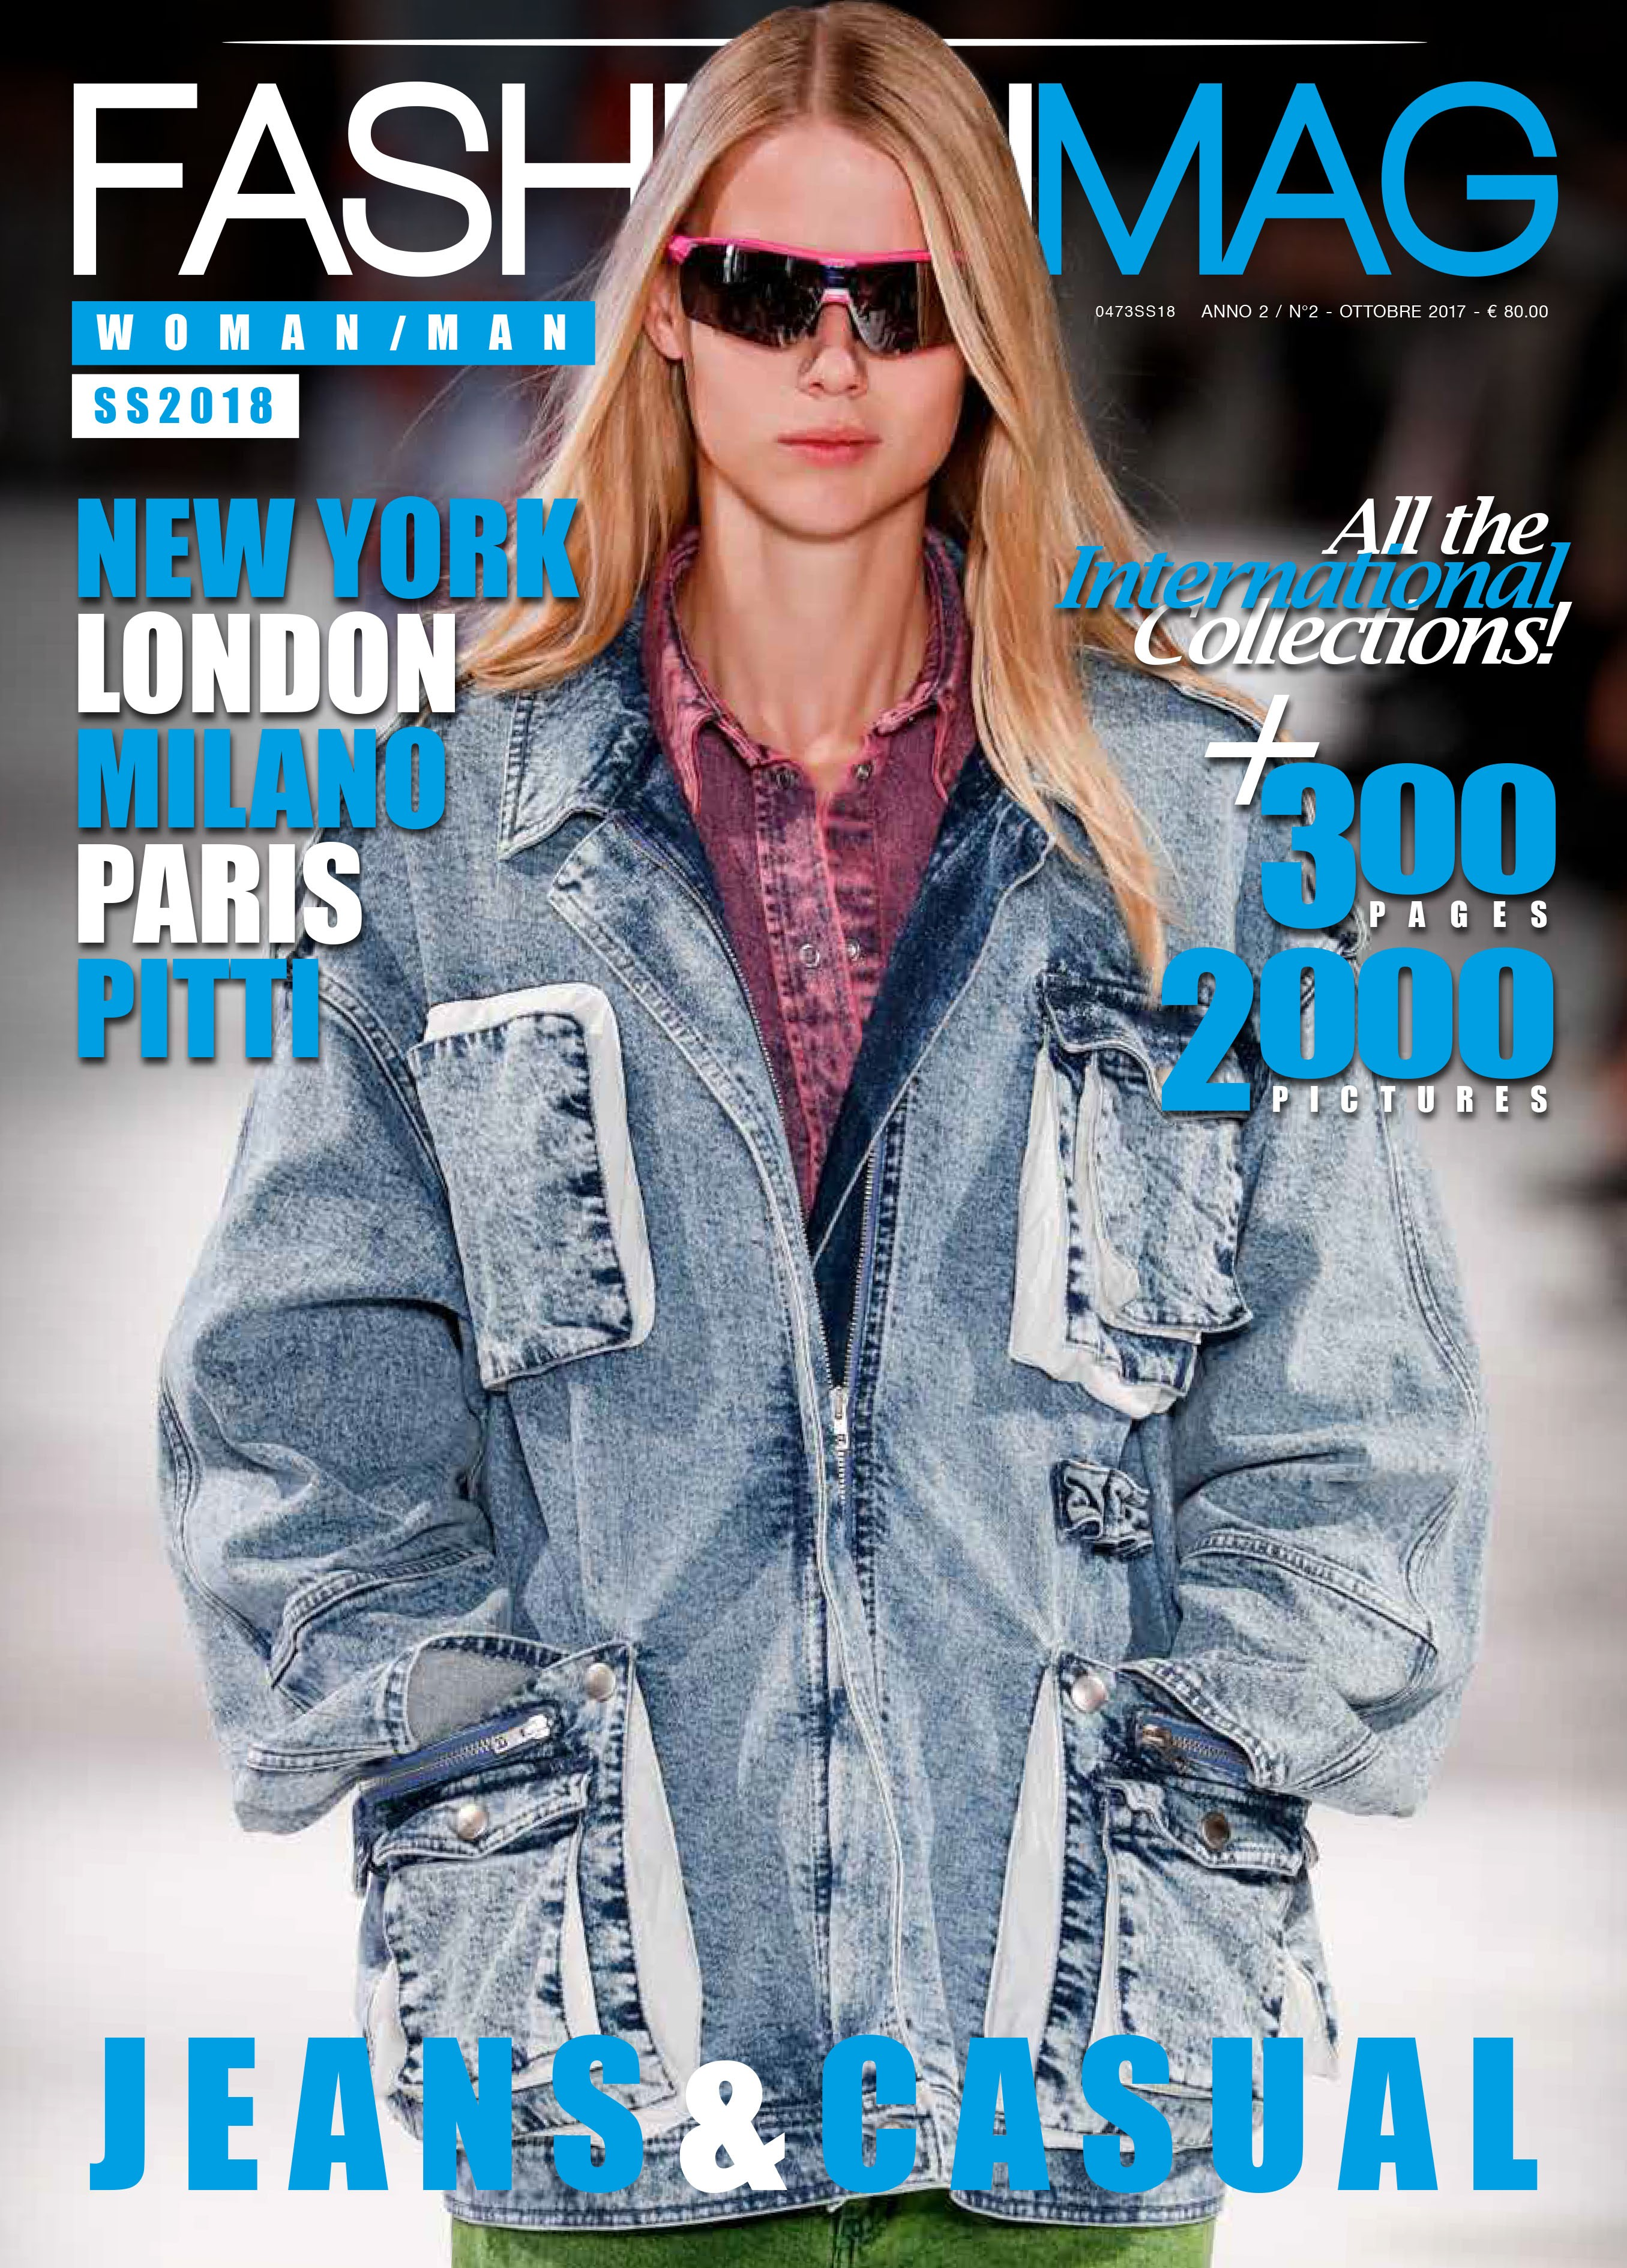 FASHIONMAG JEANS&CASUAL